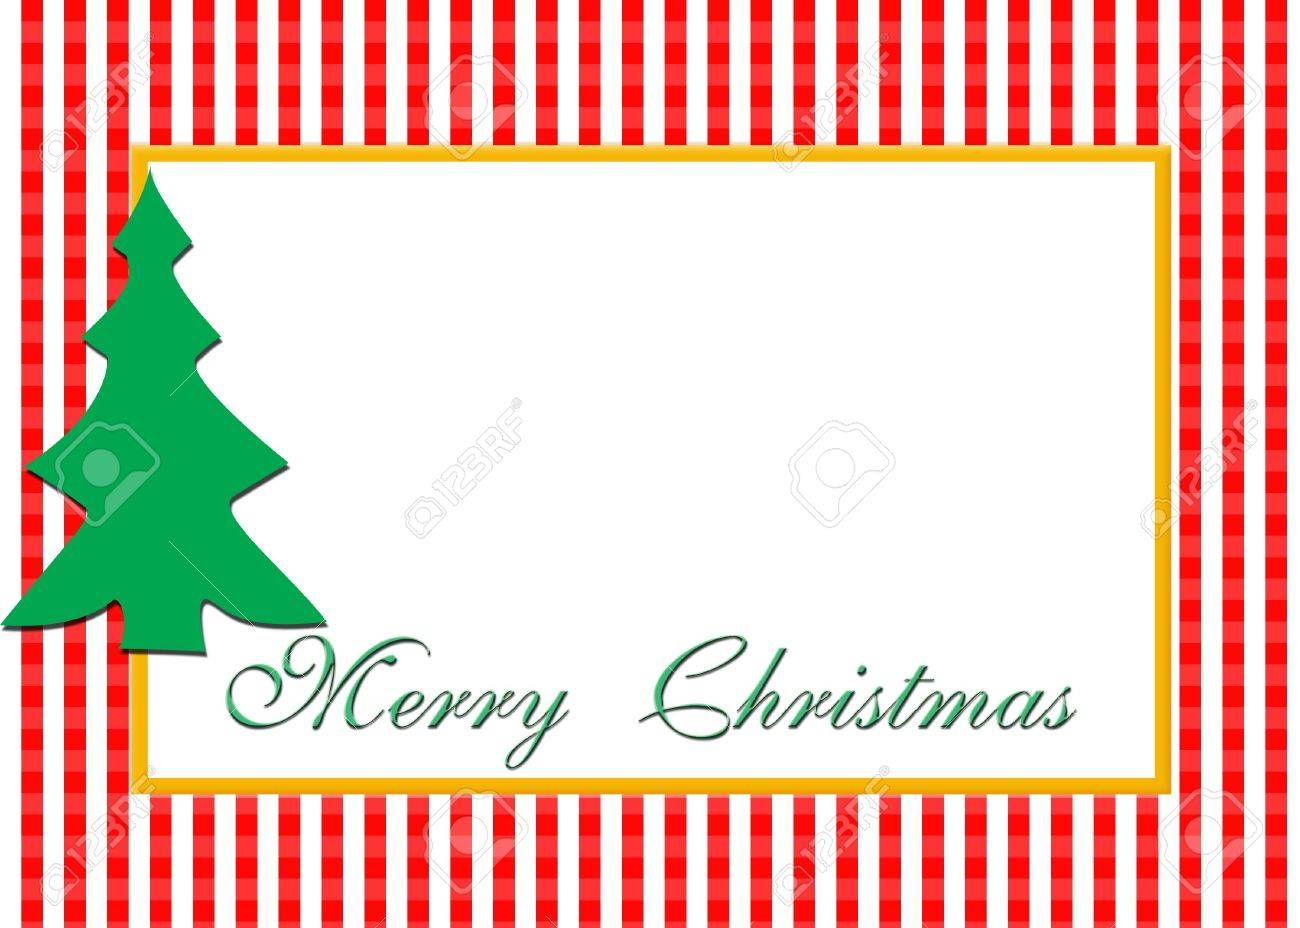 A Christmas Card Design With Blank Area For Photograph. Stock Photo ...